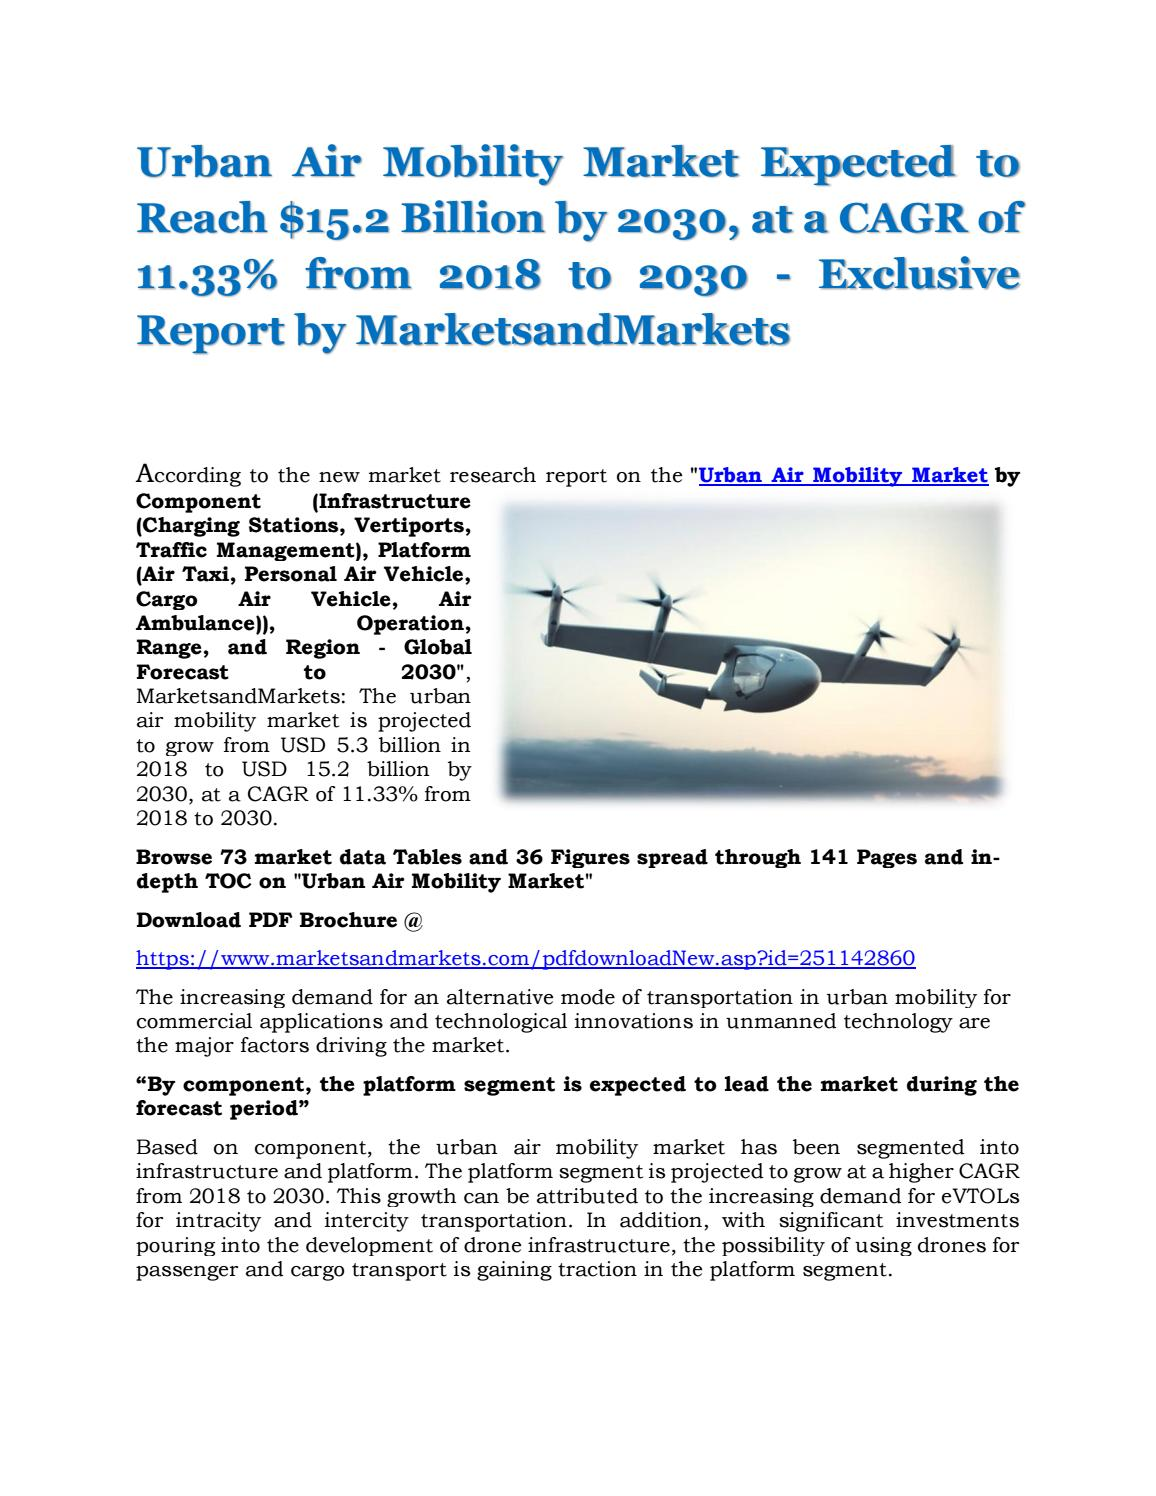 Urban Air Mobility Market Expected to Reach $15 2 Billion by